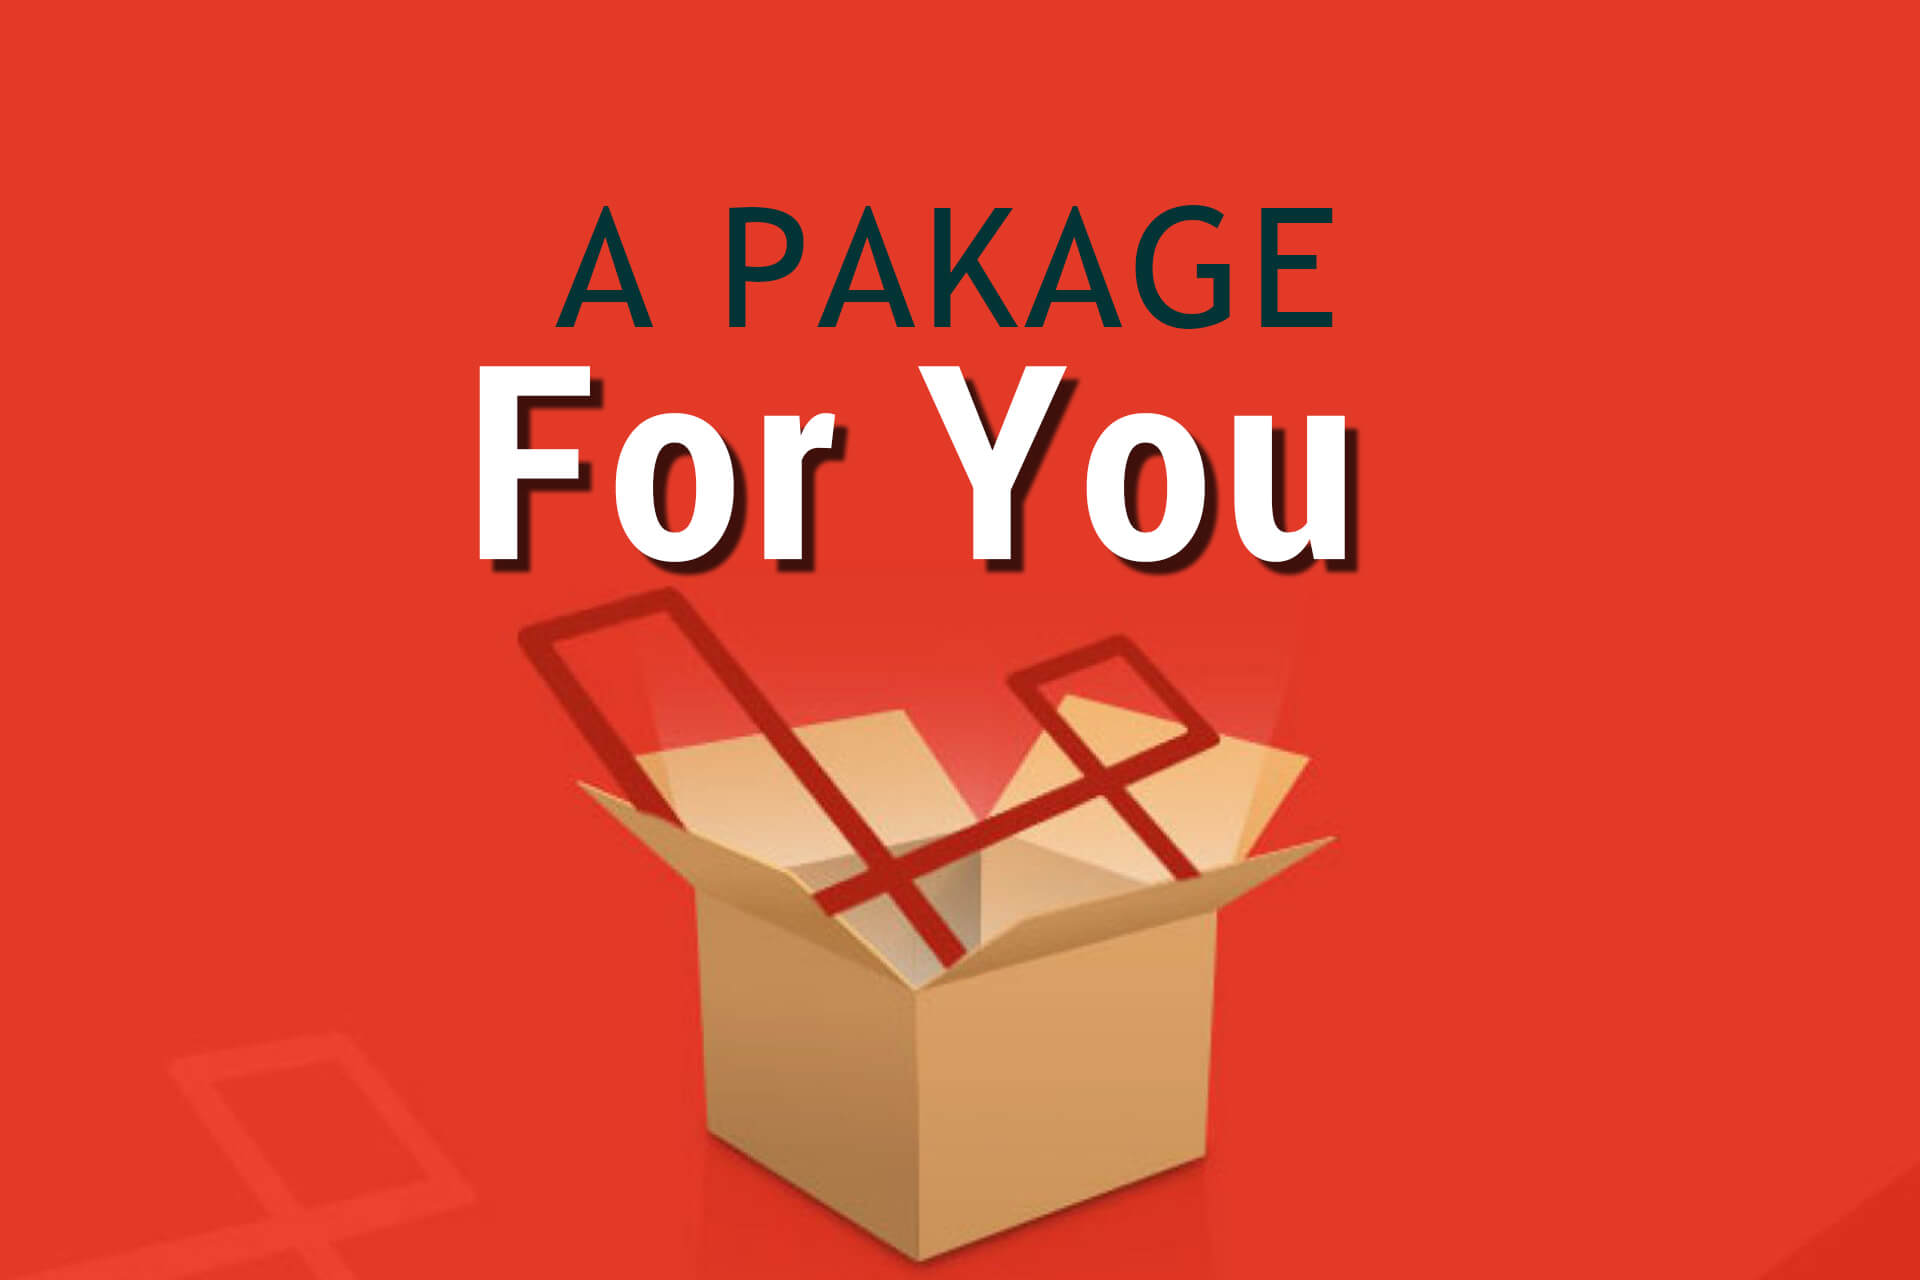 A Package For you